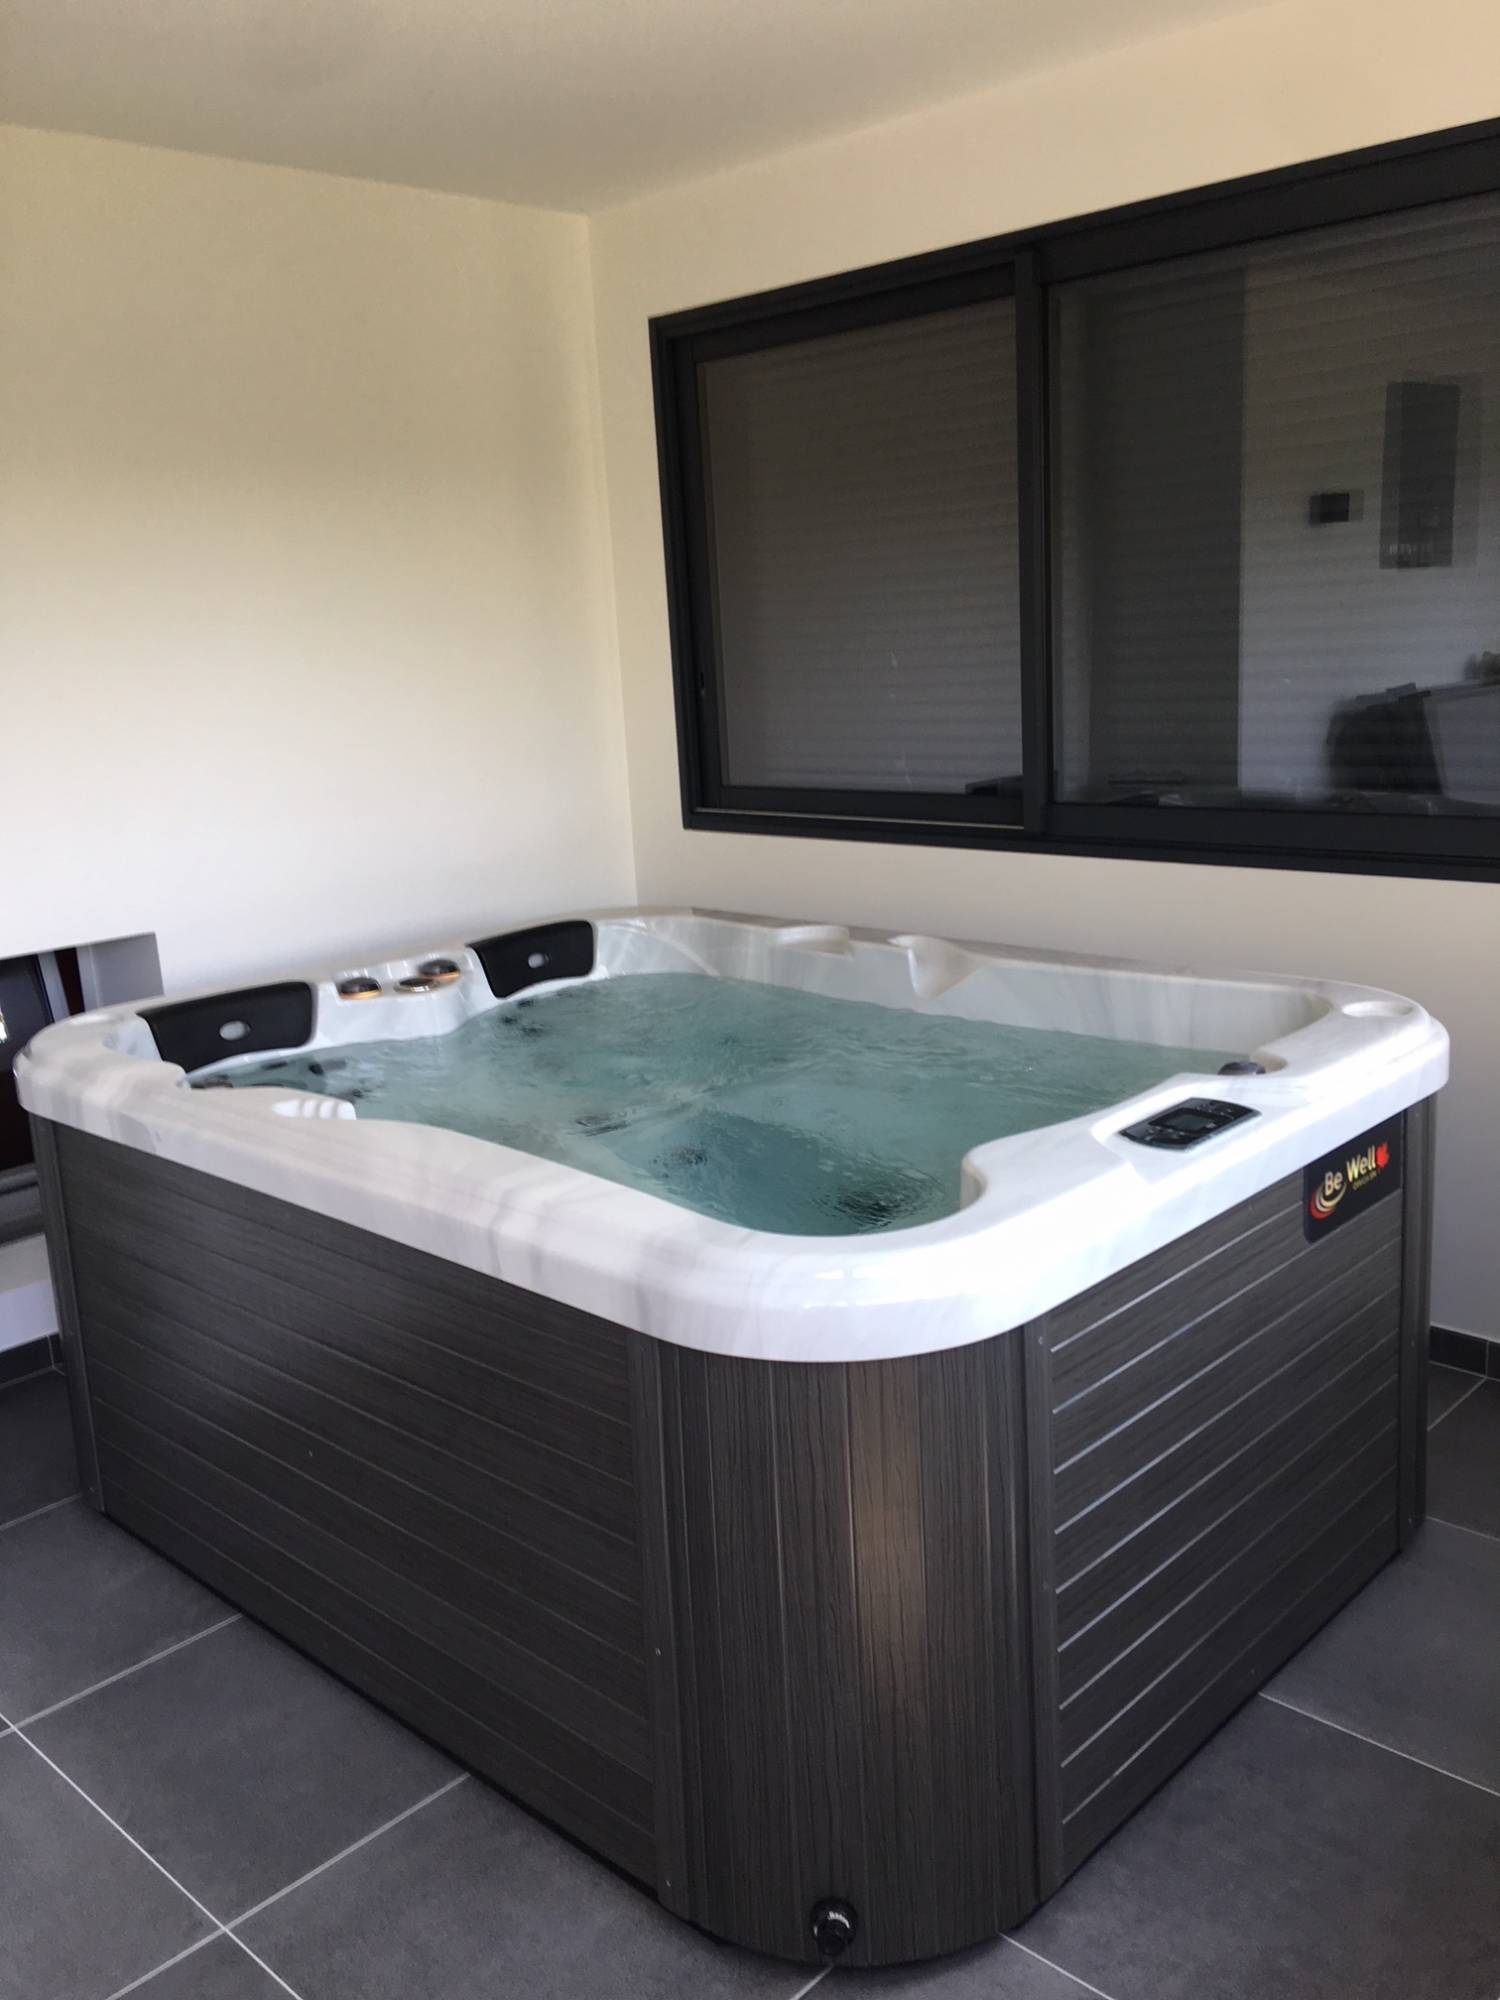 Jacuzzi Interieur Spa 3 Places Dans Un Agrandissement Be Well Canada Spa